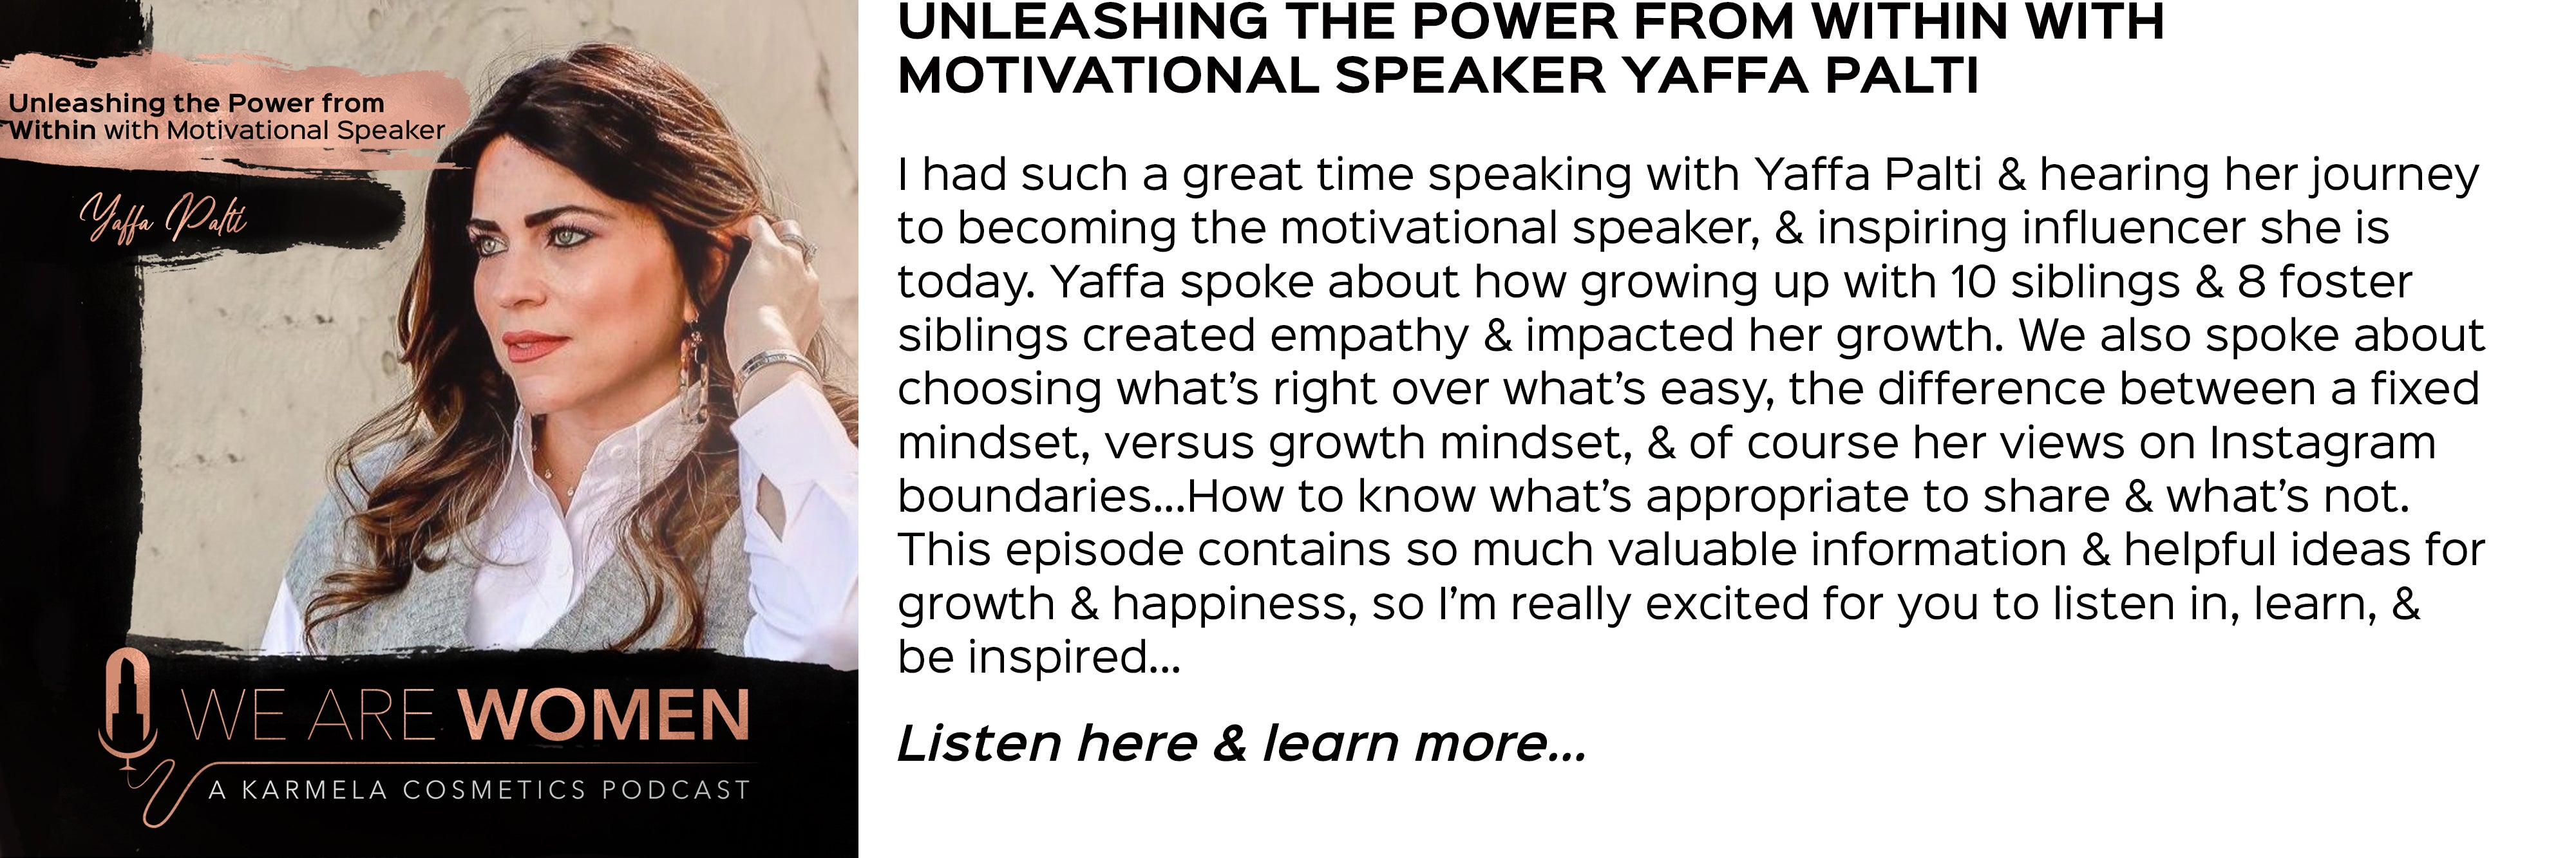 Speaker Yaffa Palti, unleashing the power from within